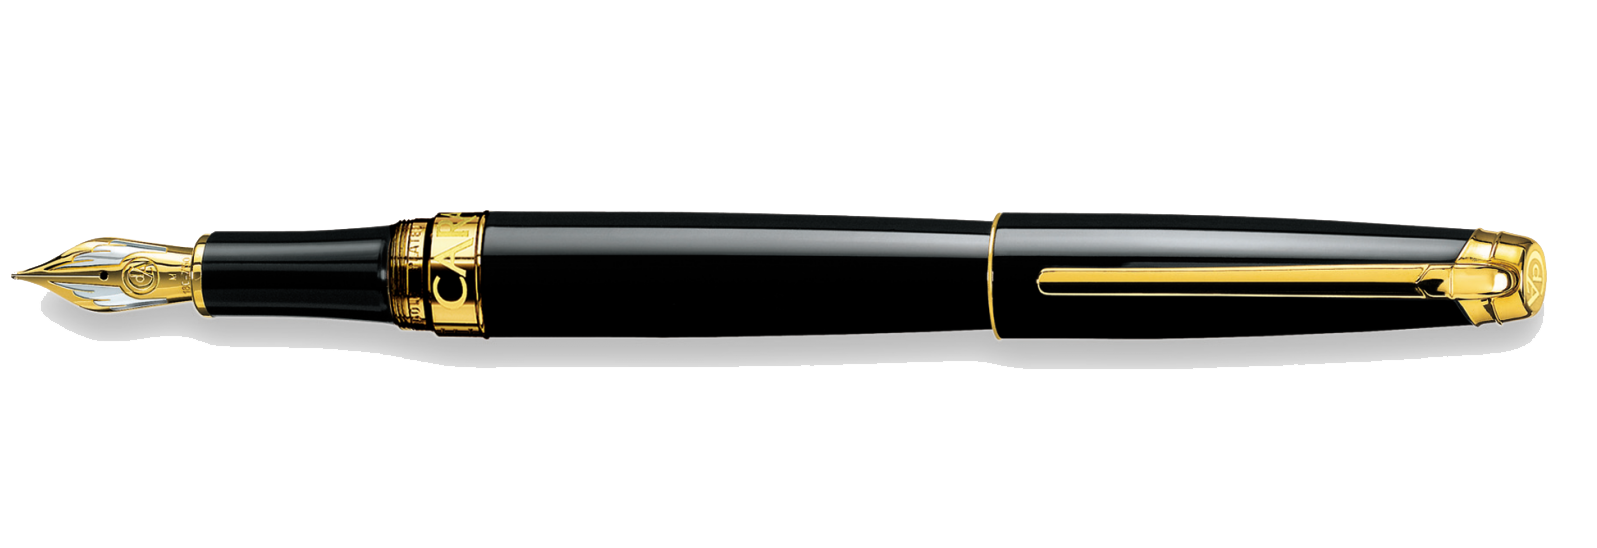 Fountain Pen Png image #43192